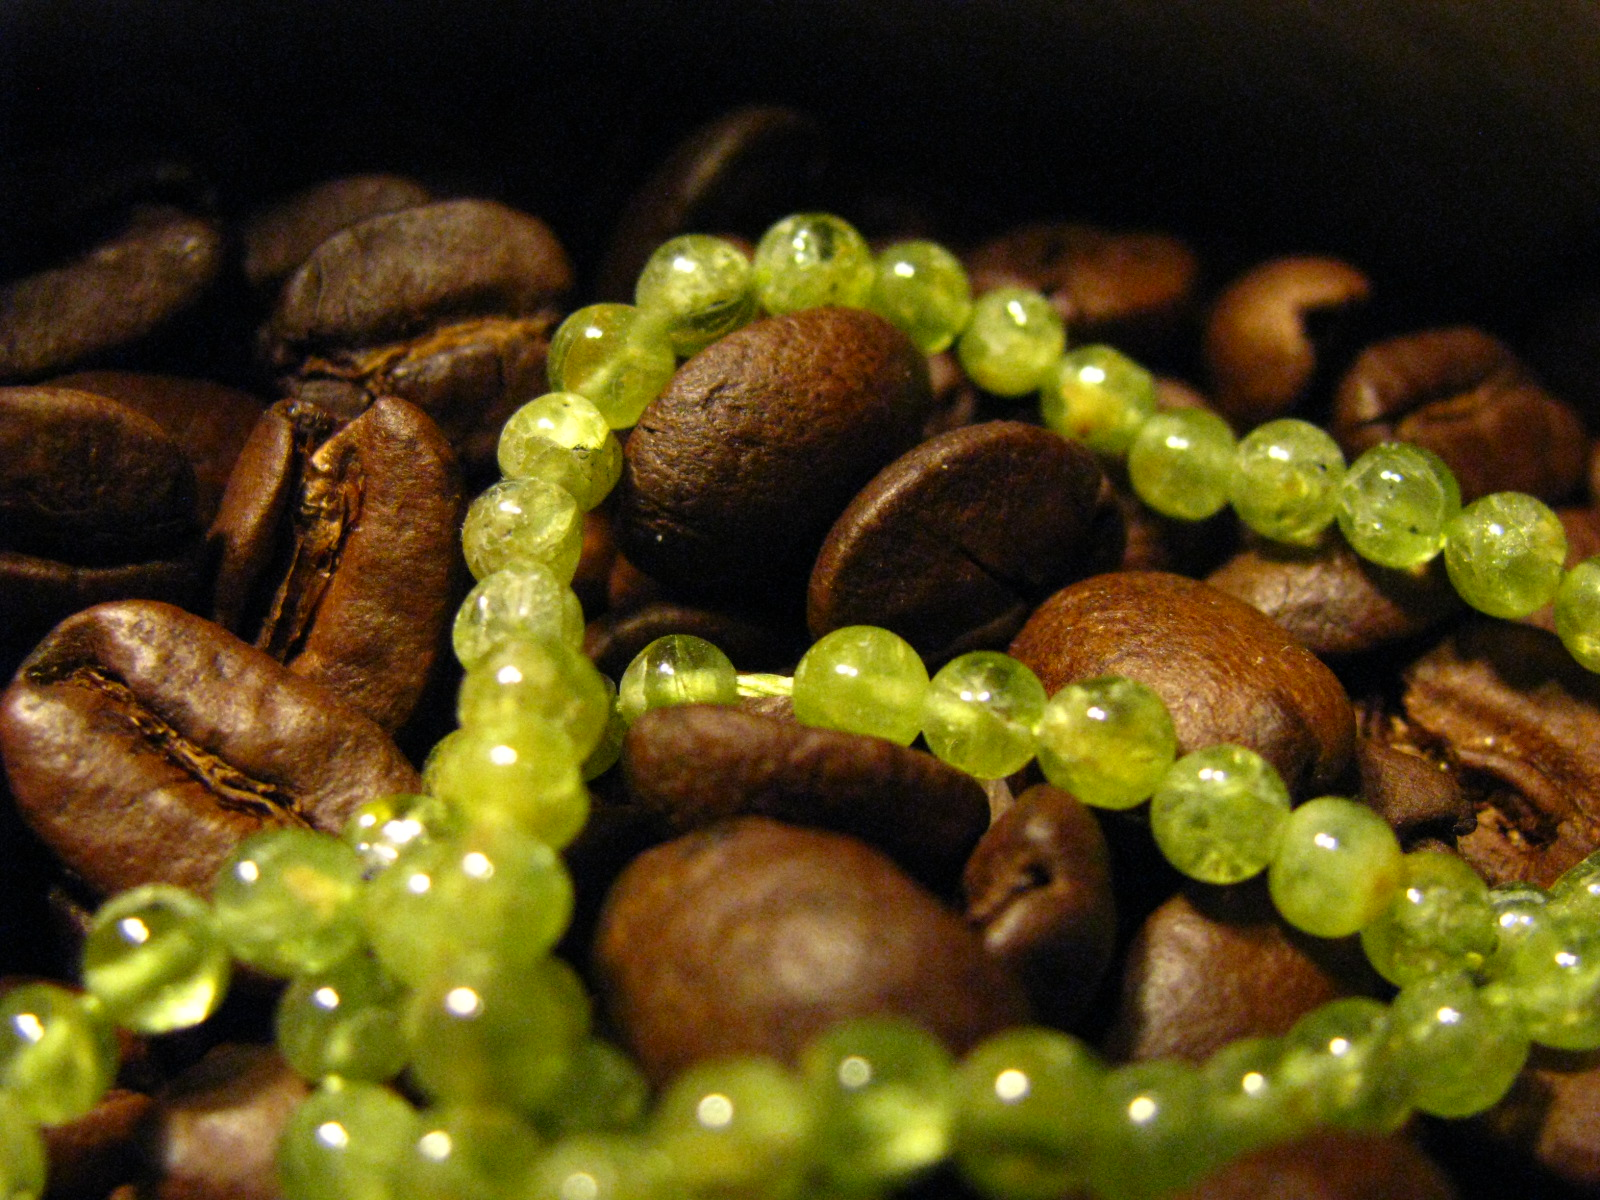 Peridot and Coffee Beans by Sweetfire Creations by Lori Reed